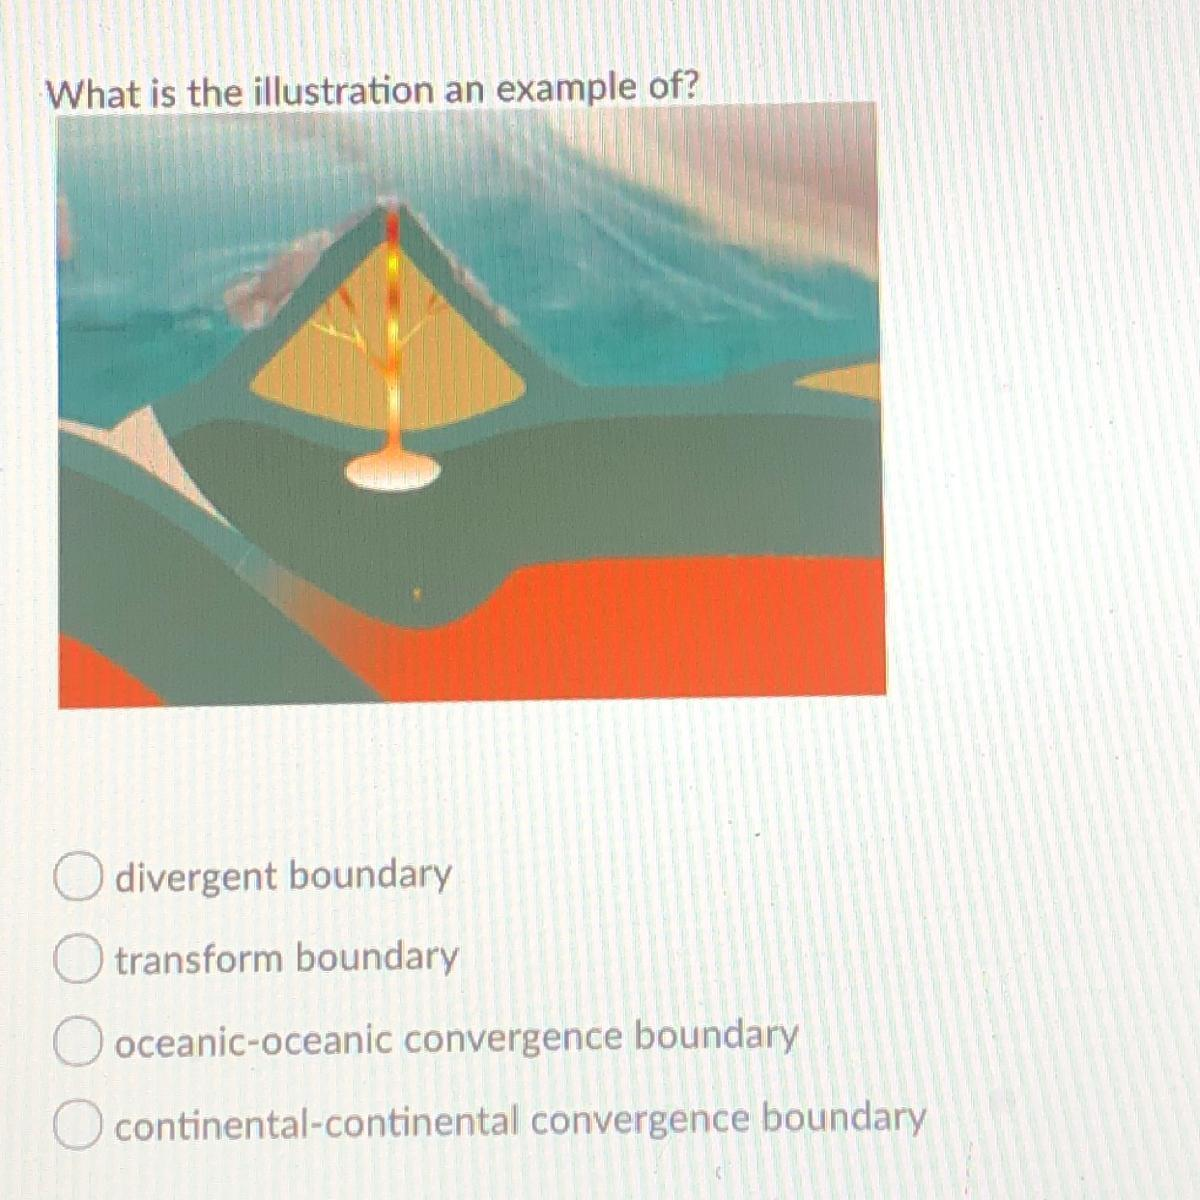 What is the illustration an example of? divergent boundary